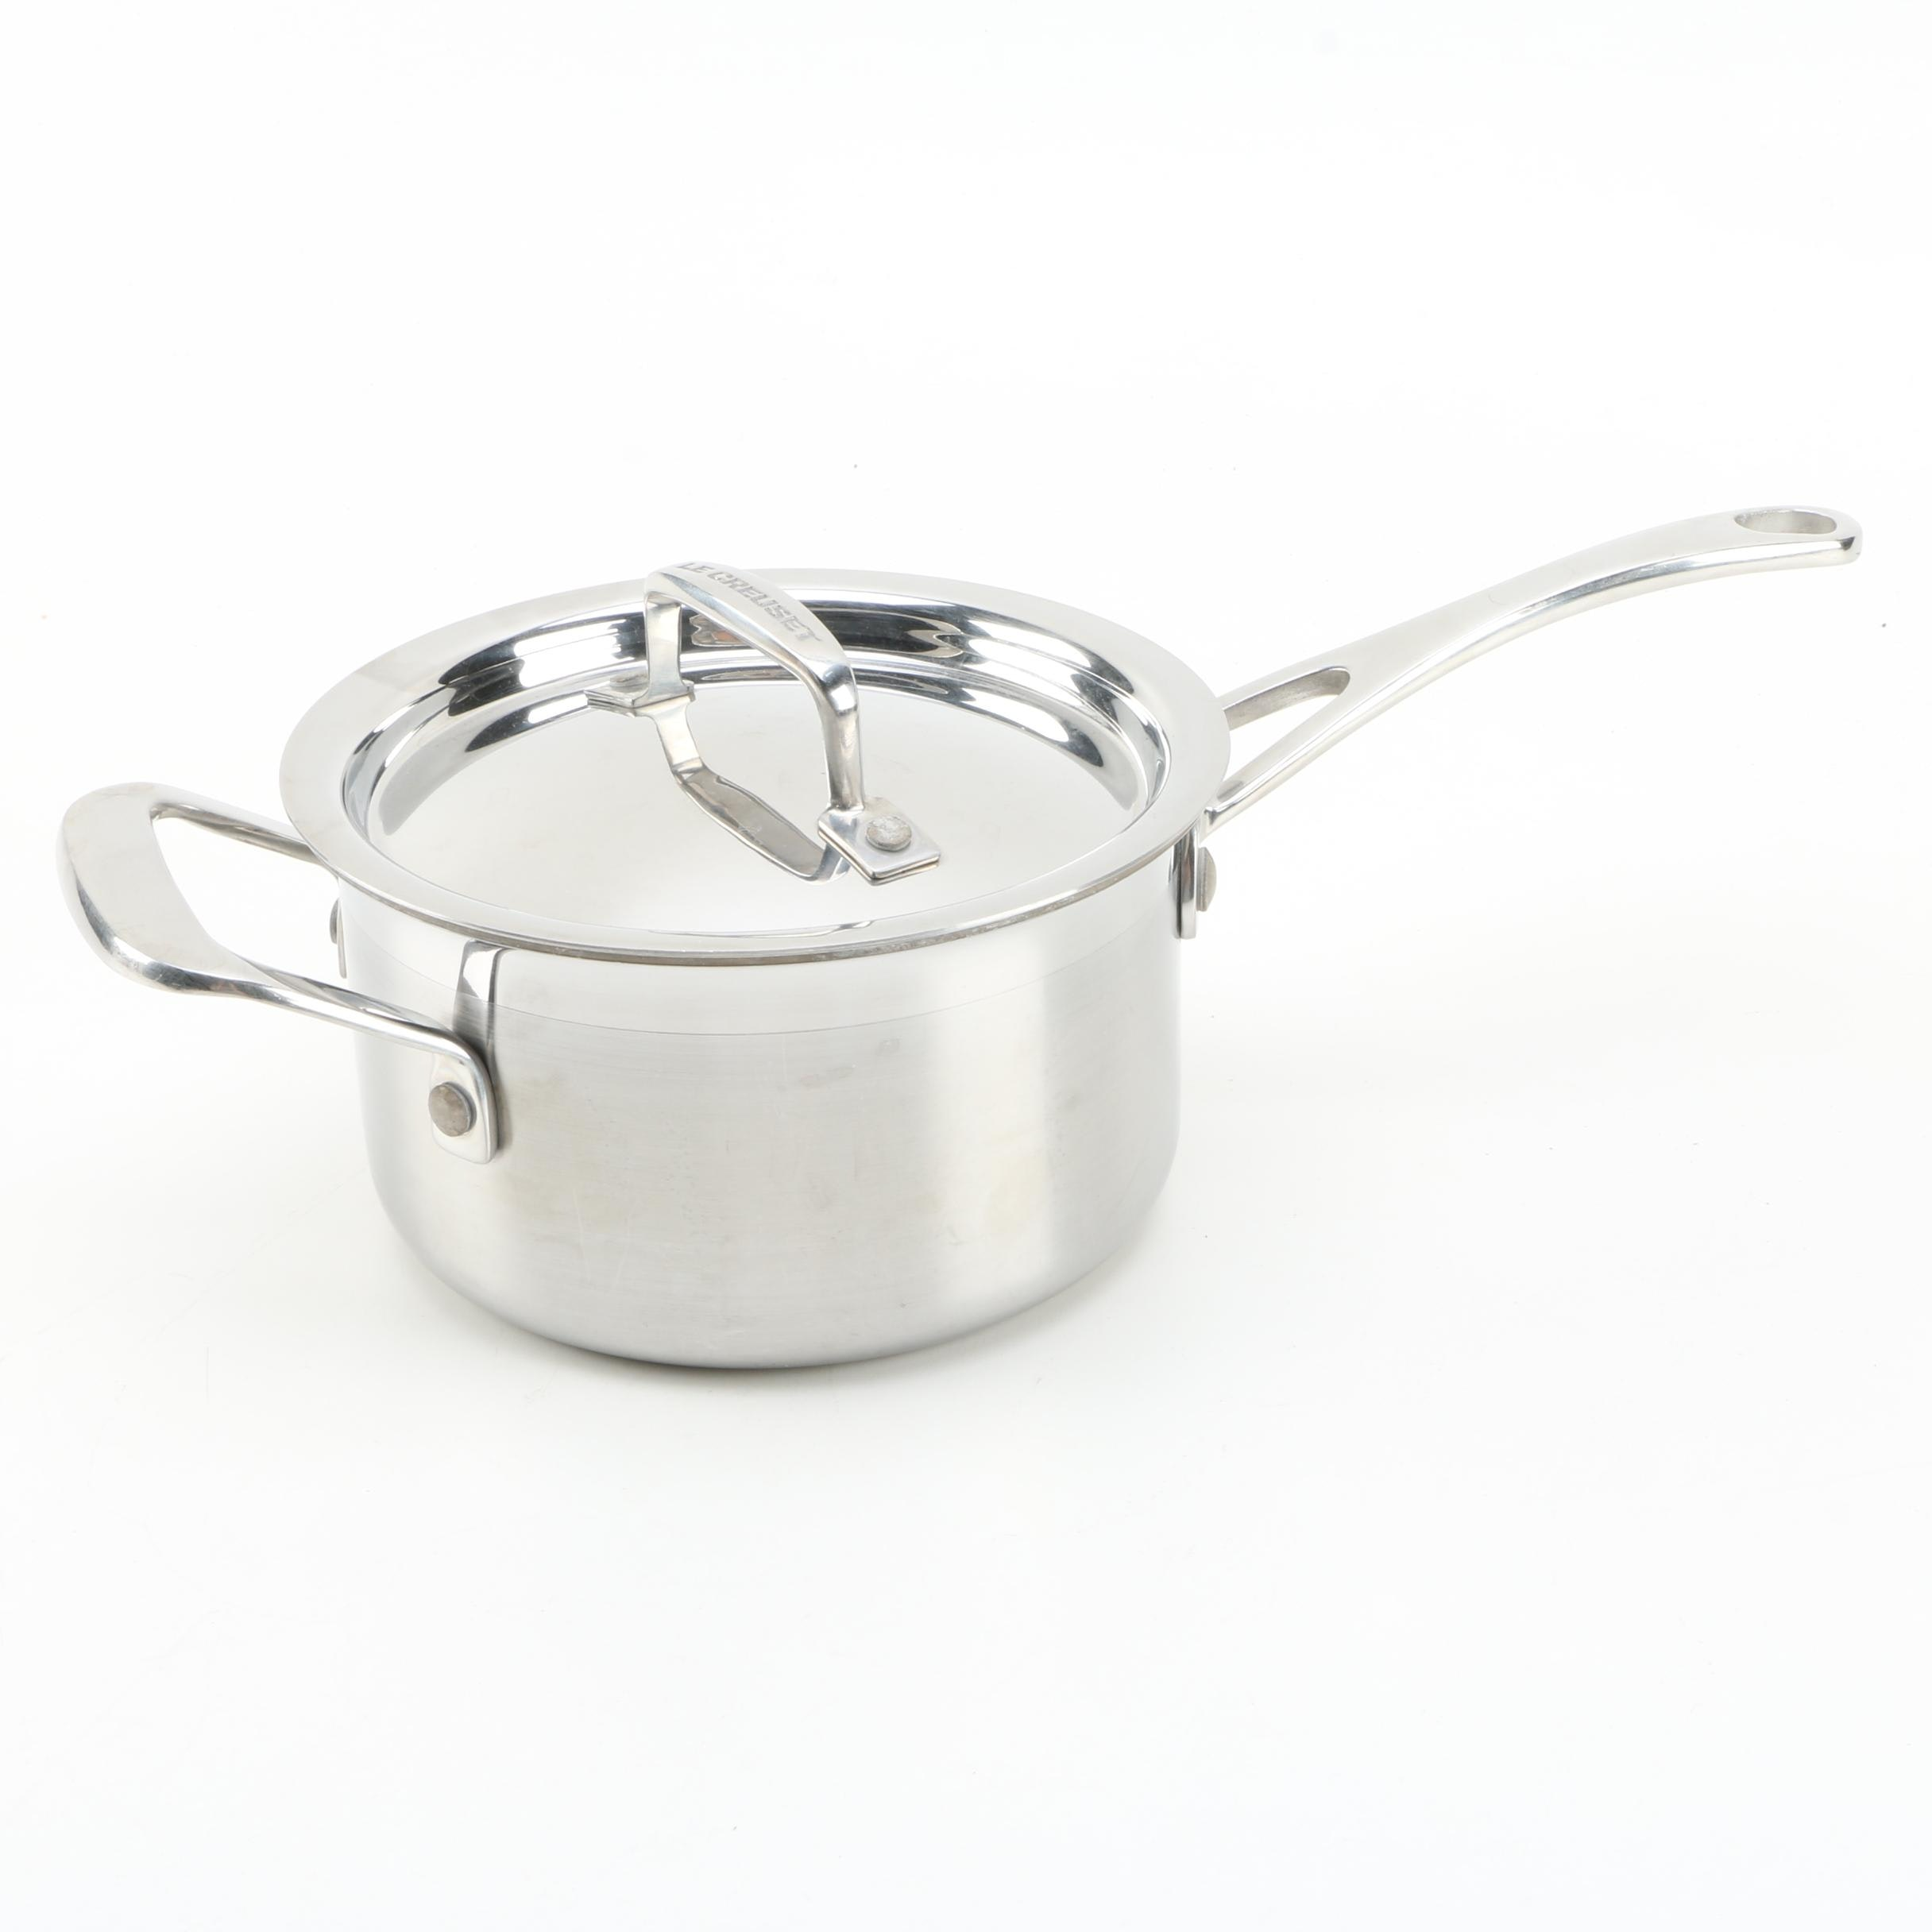 Le Creuset Stainless Pot